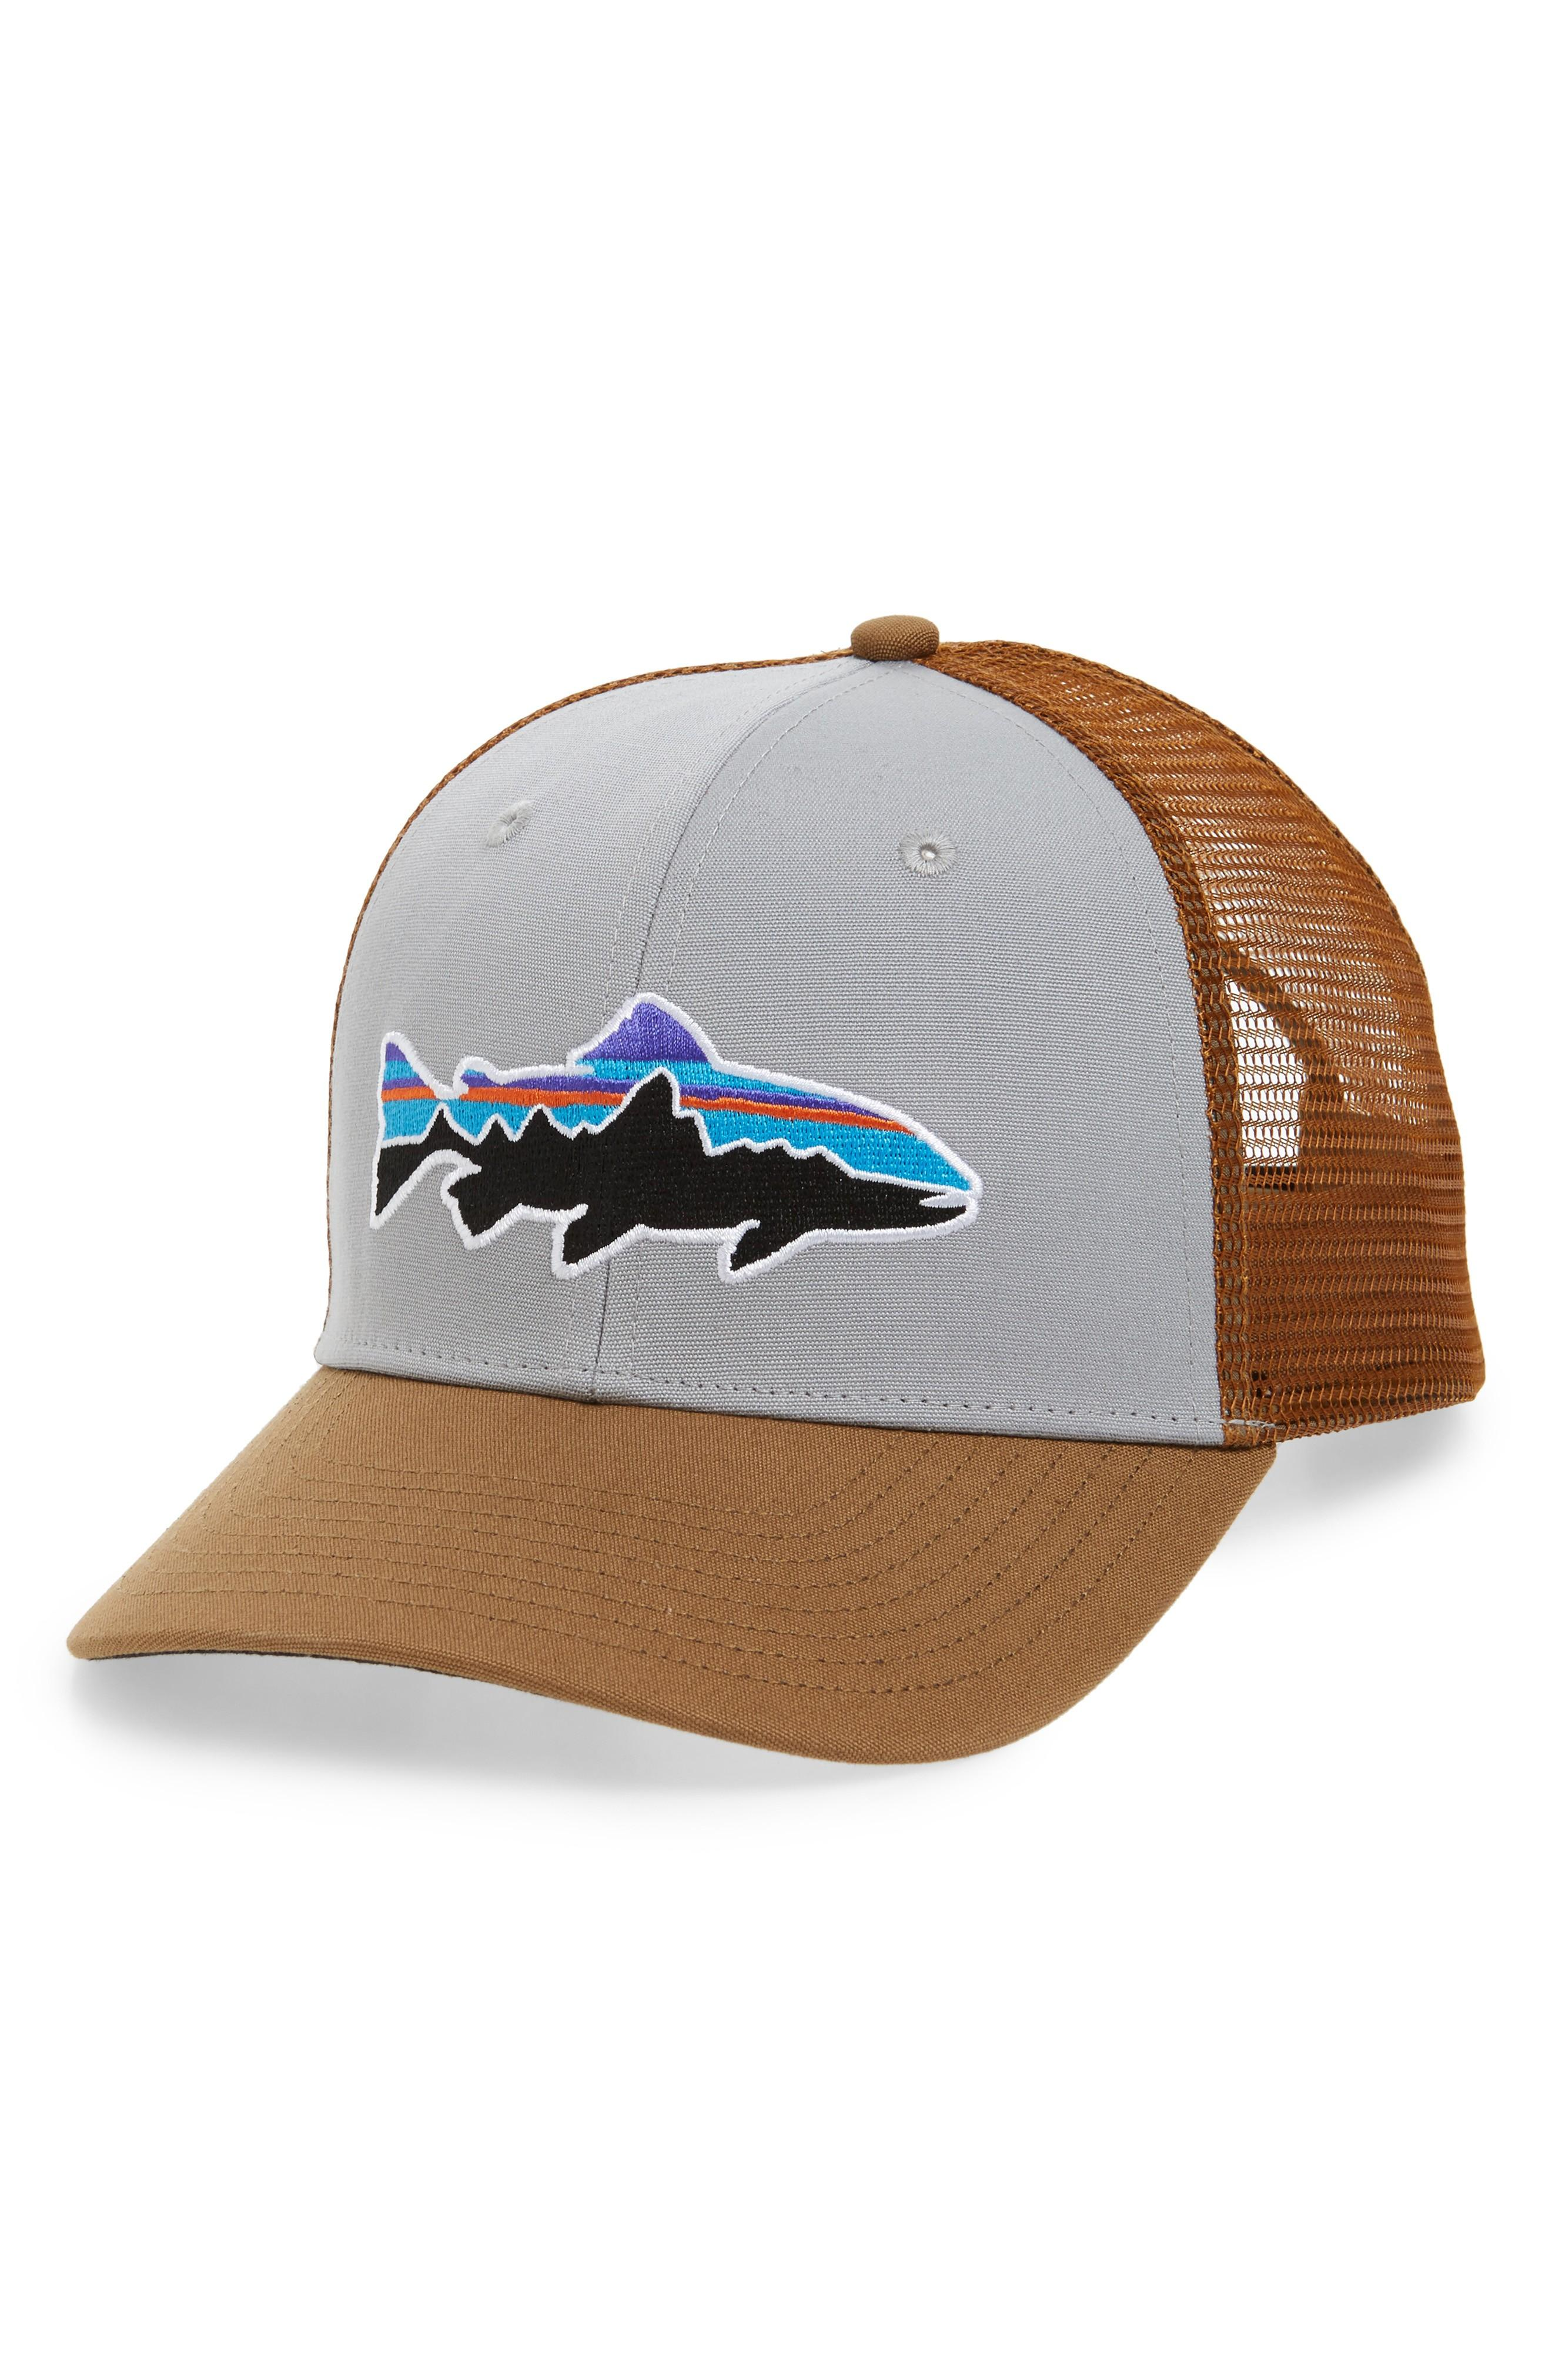 41e95bb77cbcd Patagonia  Fitz Roy - Trout  Trucker Hat - Grey In Drifter Grey  Coriander